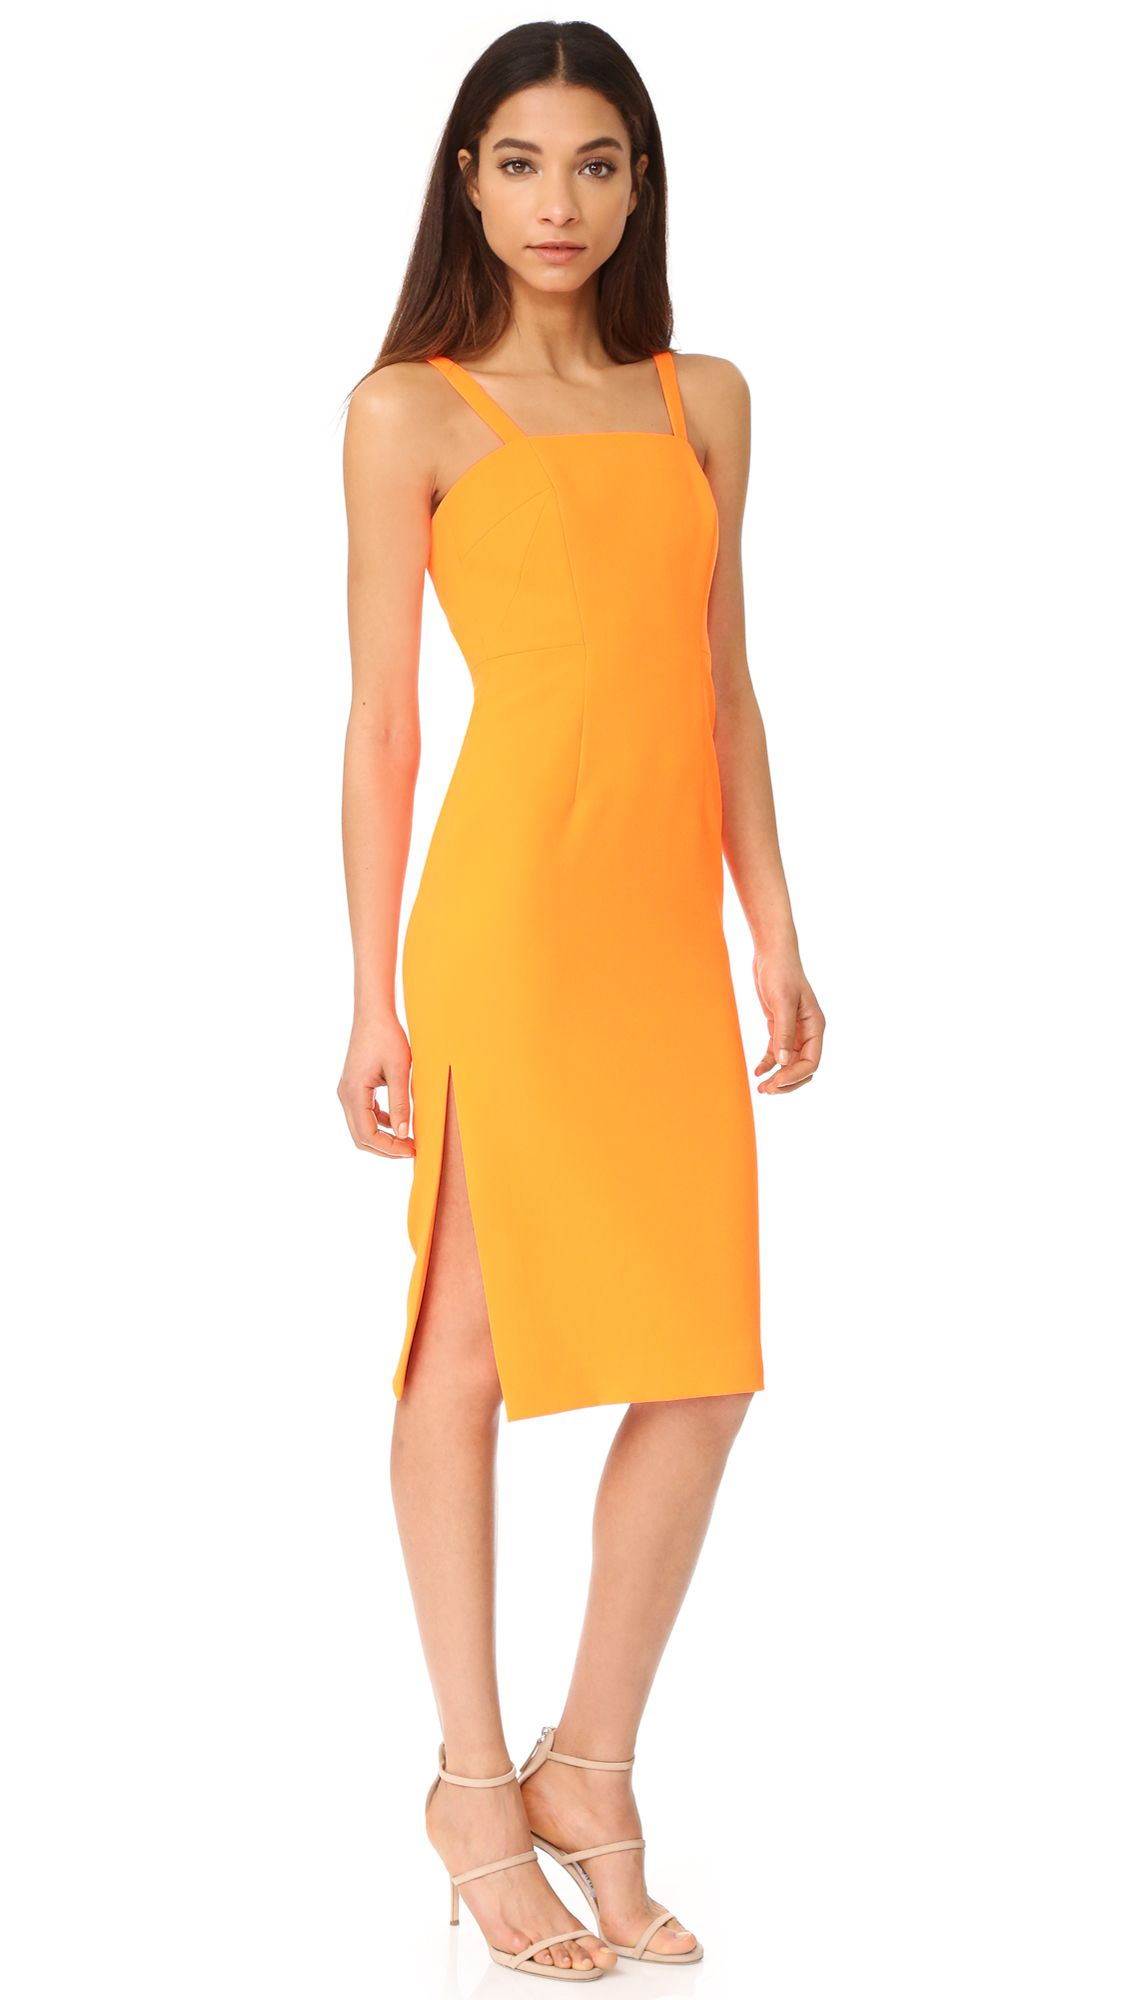 An orange fitted dress